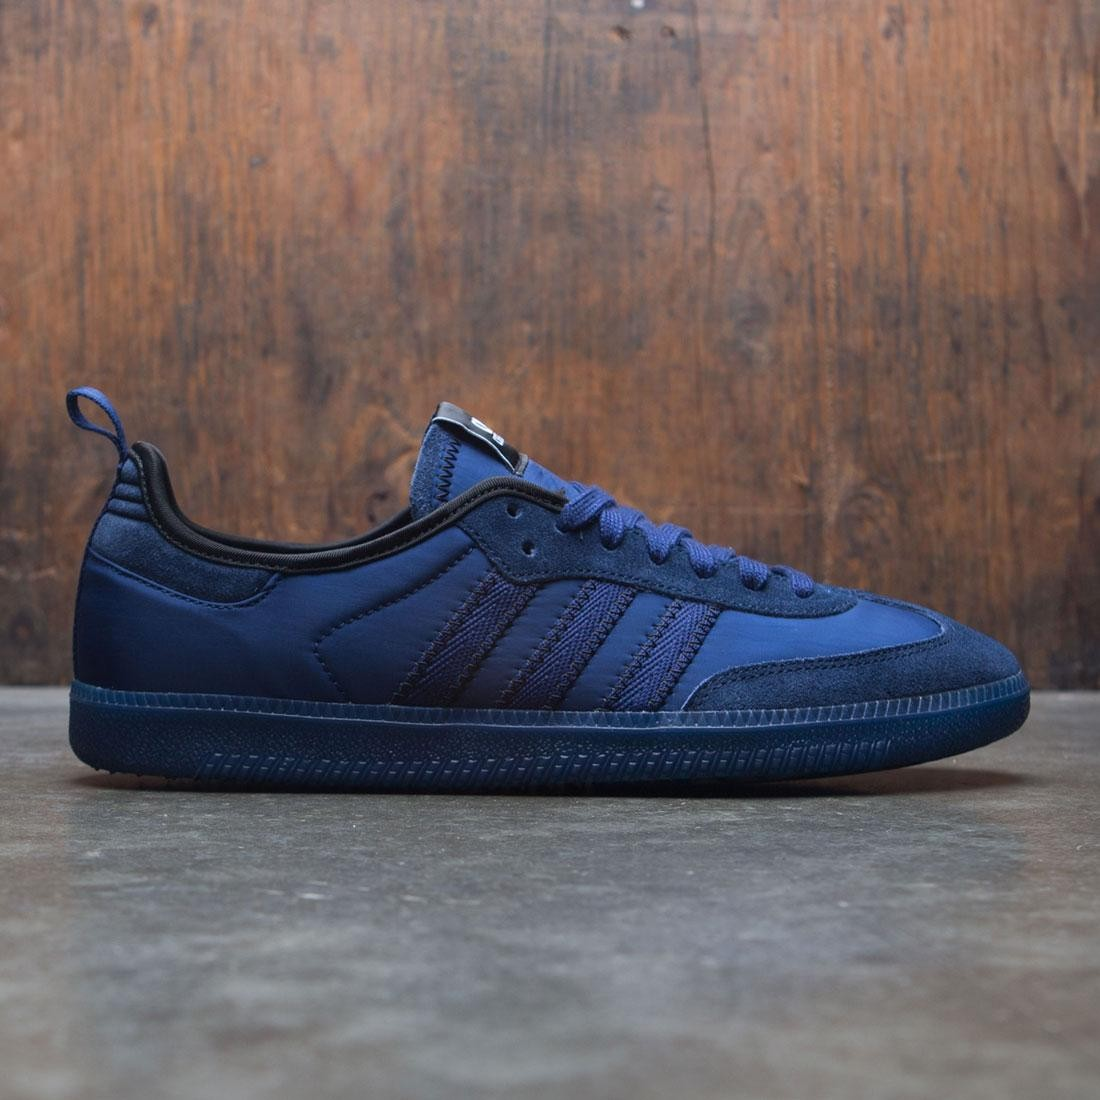 best sneakers e749a dad48 Adidas x C.P. Company Men Samba (blue / dark blue / night sky / dark purple)